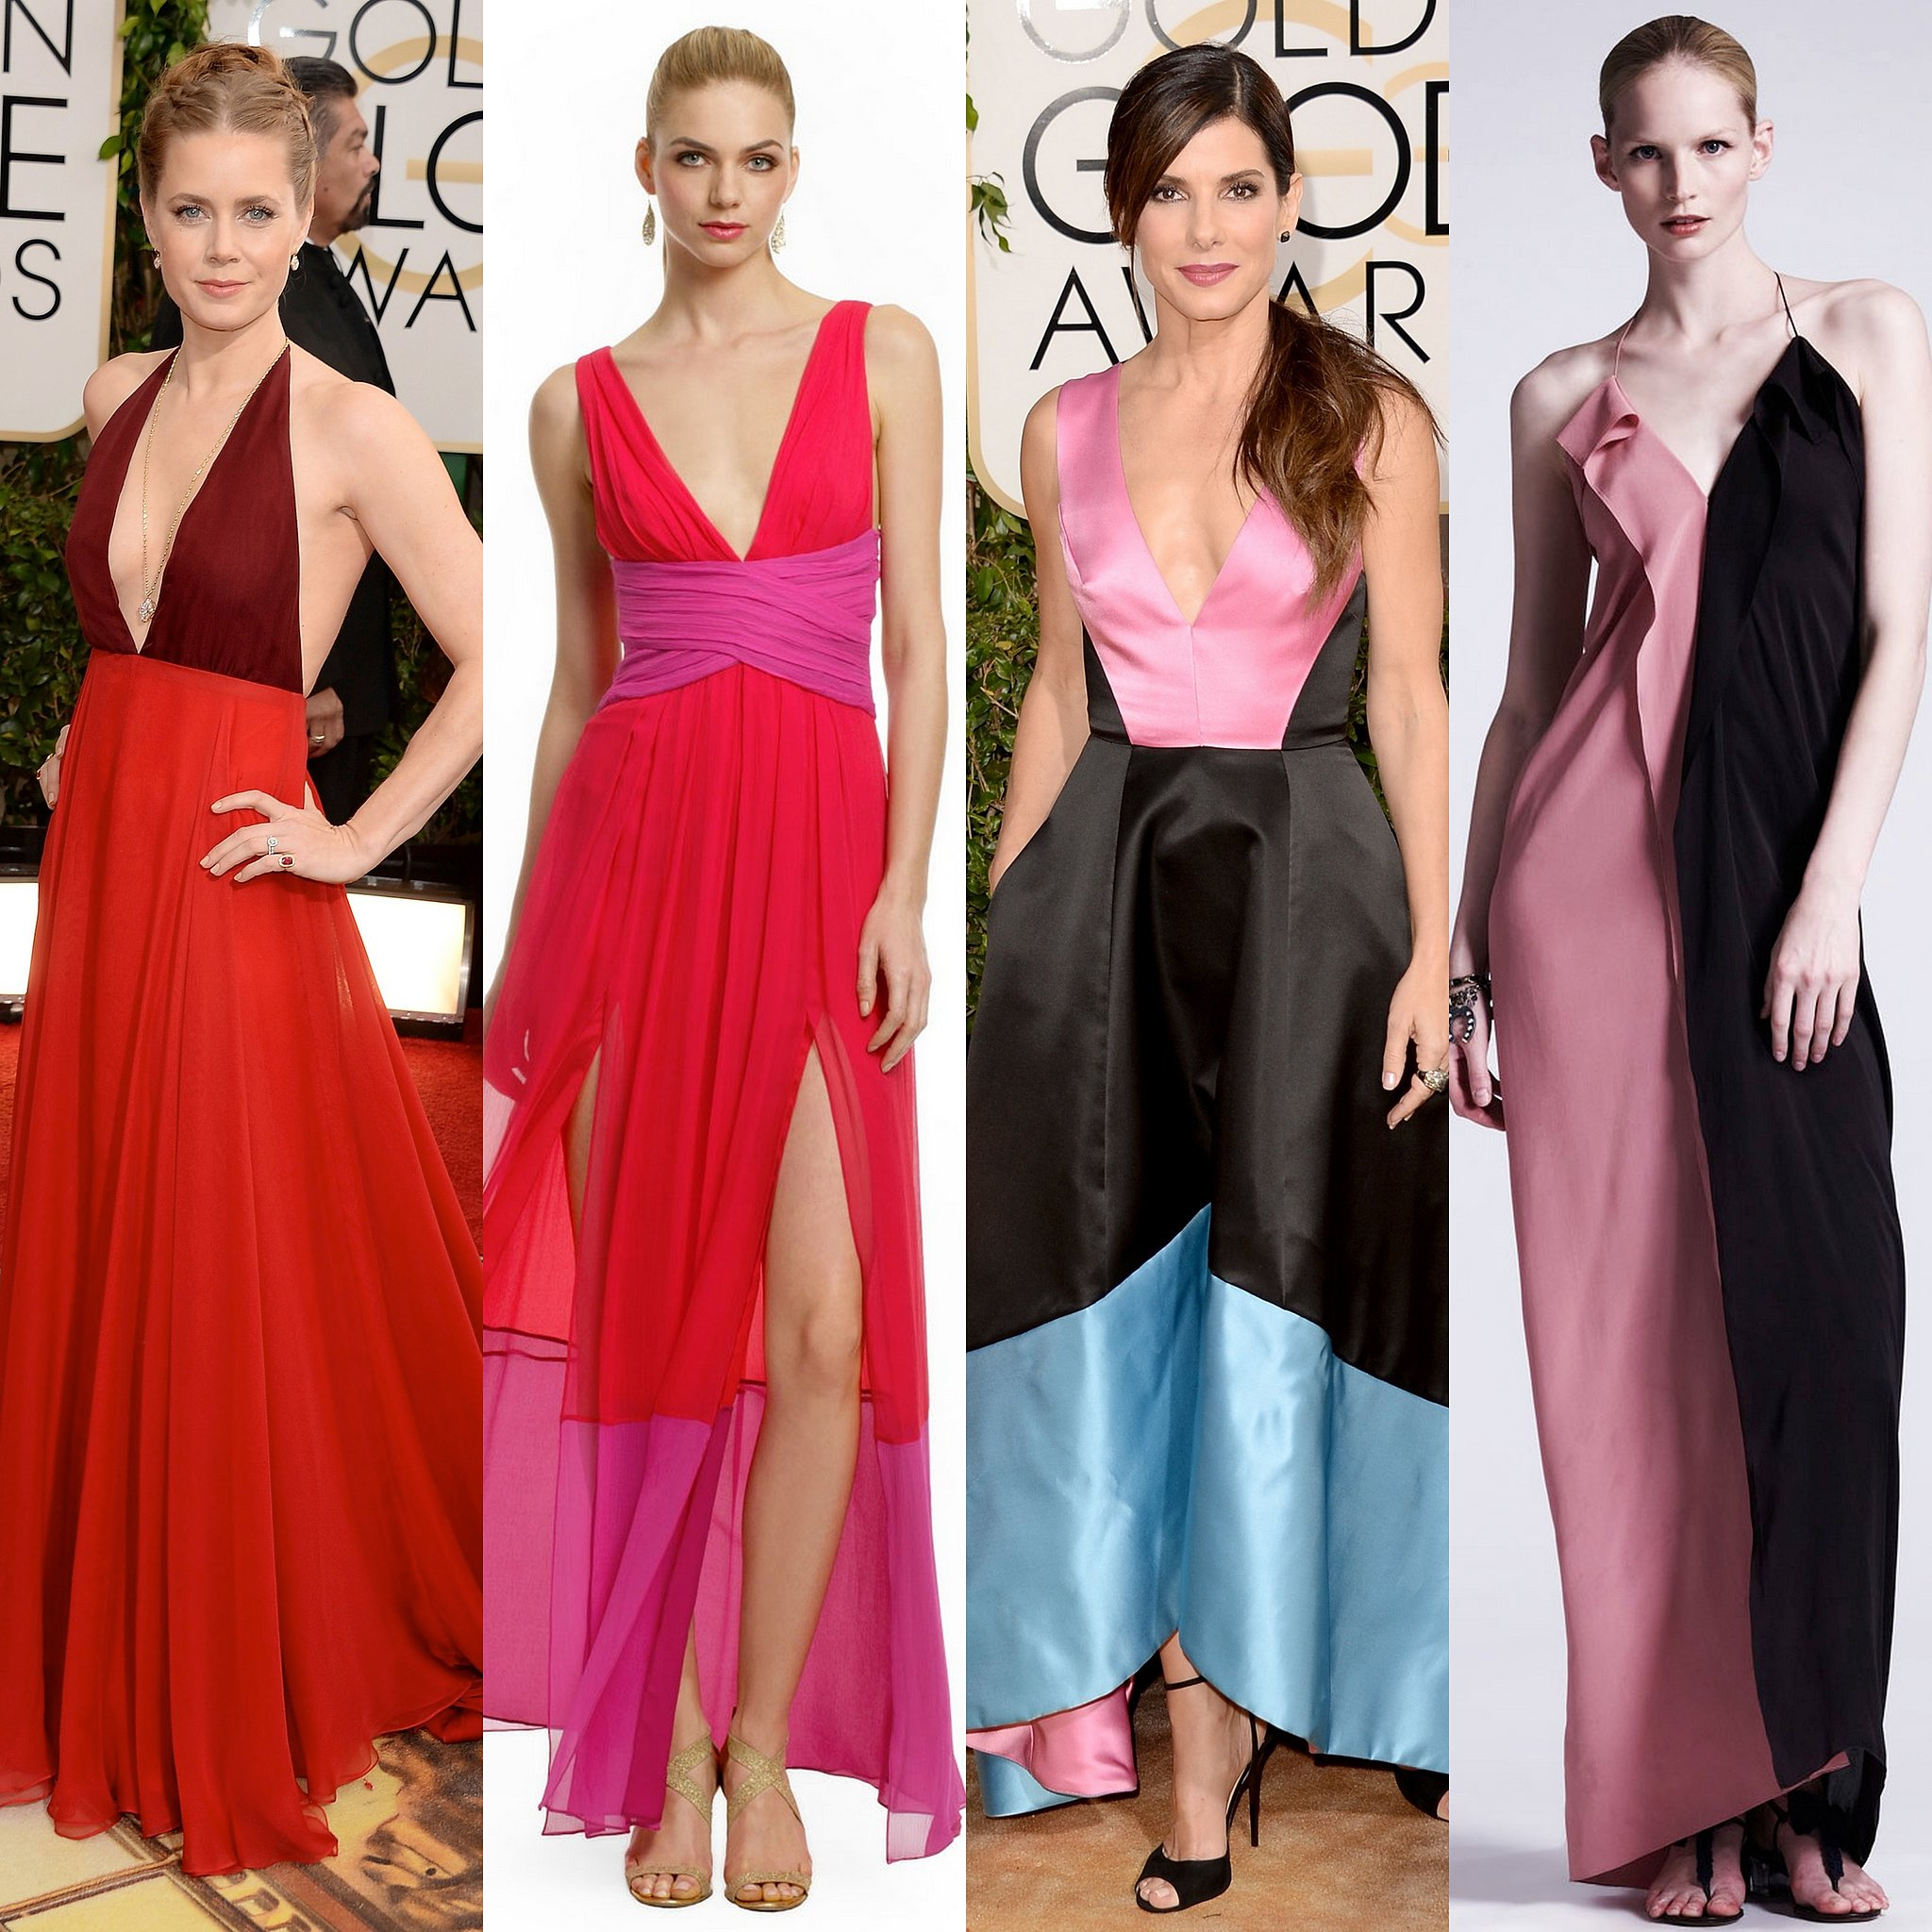 Amy Adams and Sandra Bullock are both in color-heavy colorblock gowns that accentuate each lady's best assets.